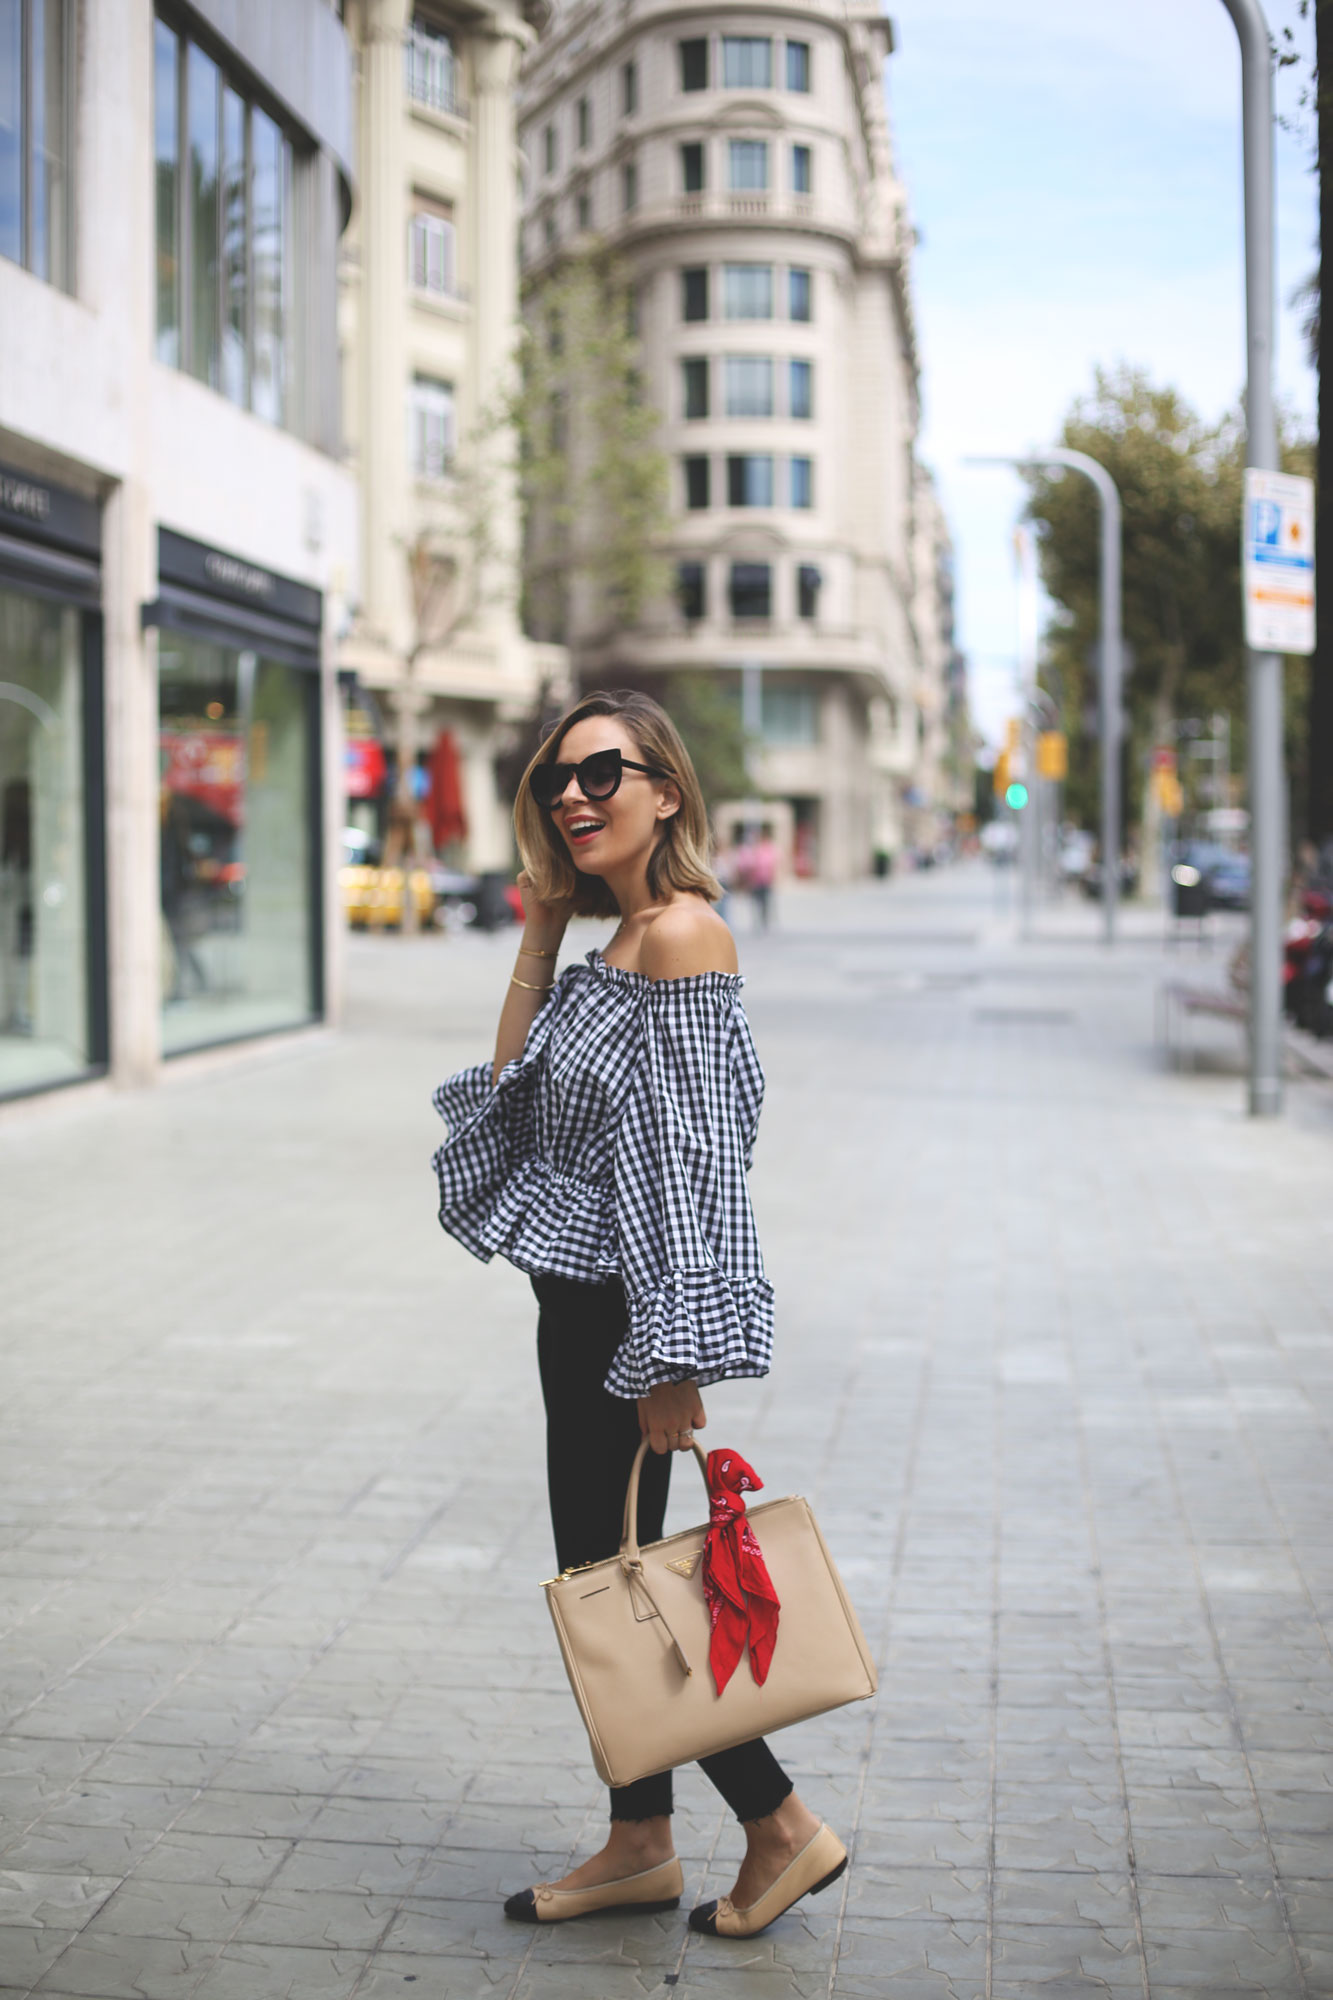 An off the shoulder cut can really accentuate your shape, and looks especially cute when worn on a statement print top such as this gingham blouse worn by Priscila Betancort. We love this cute and summery look! Top: Chicwish, Jeans: Zara, Shoes: Chanel, Bag: Prada.